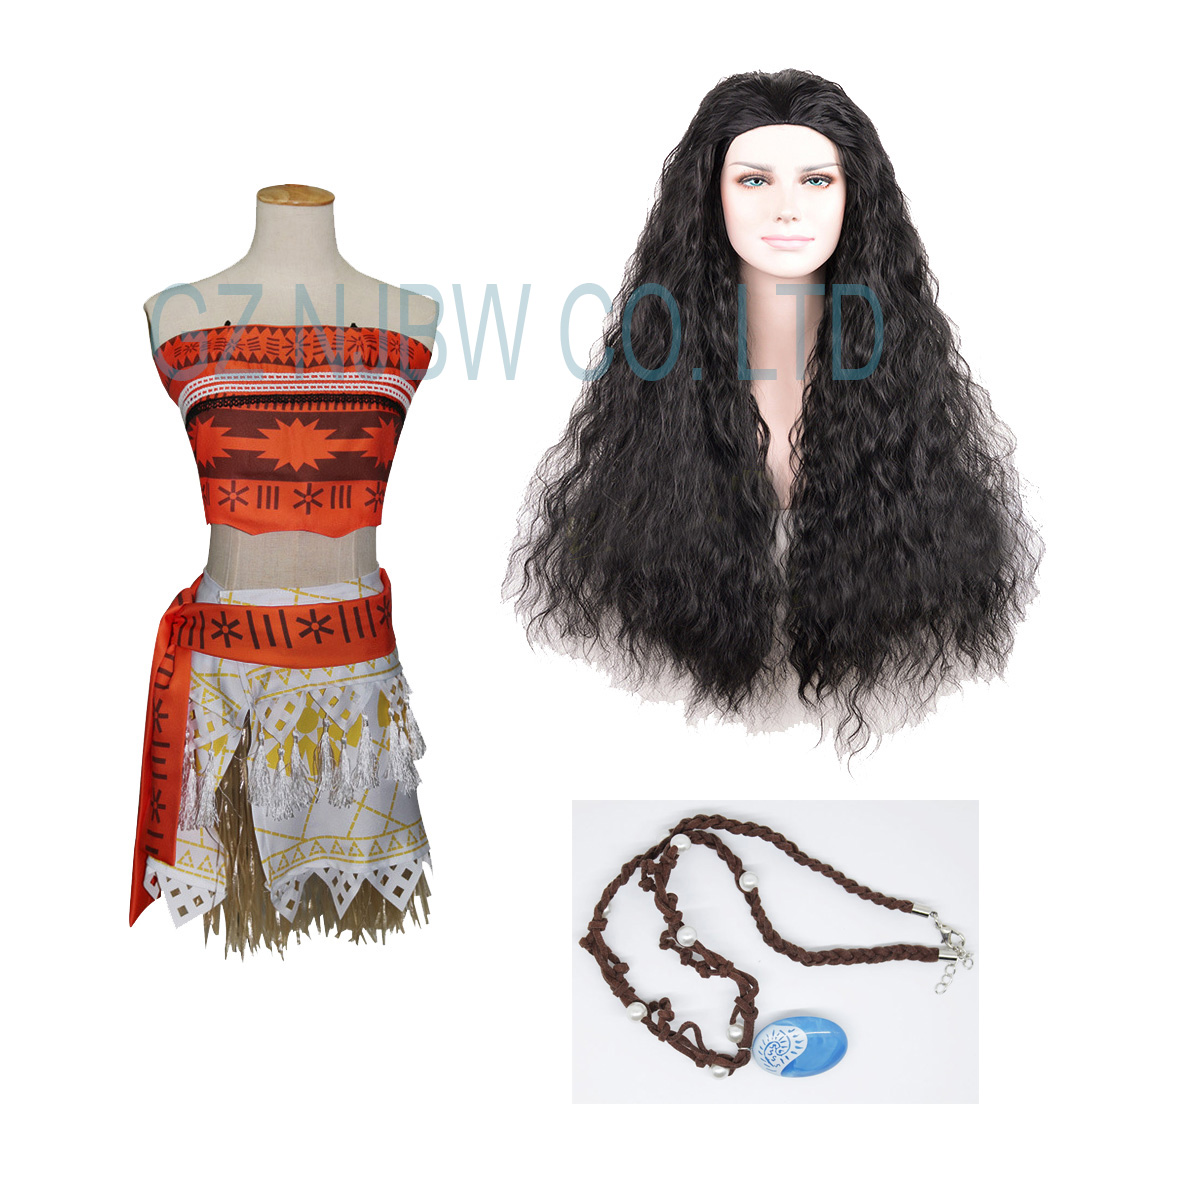 9b8fb5082 Details about Girls Animie Movie Polynesia princess Moana Cosplay Costume  Dress Wig Necklace